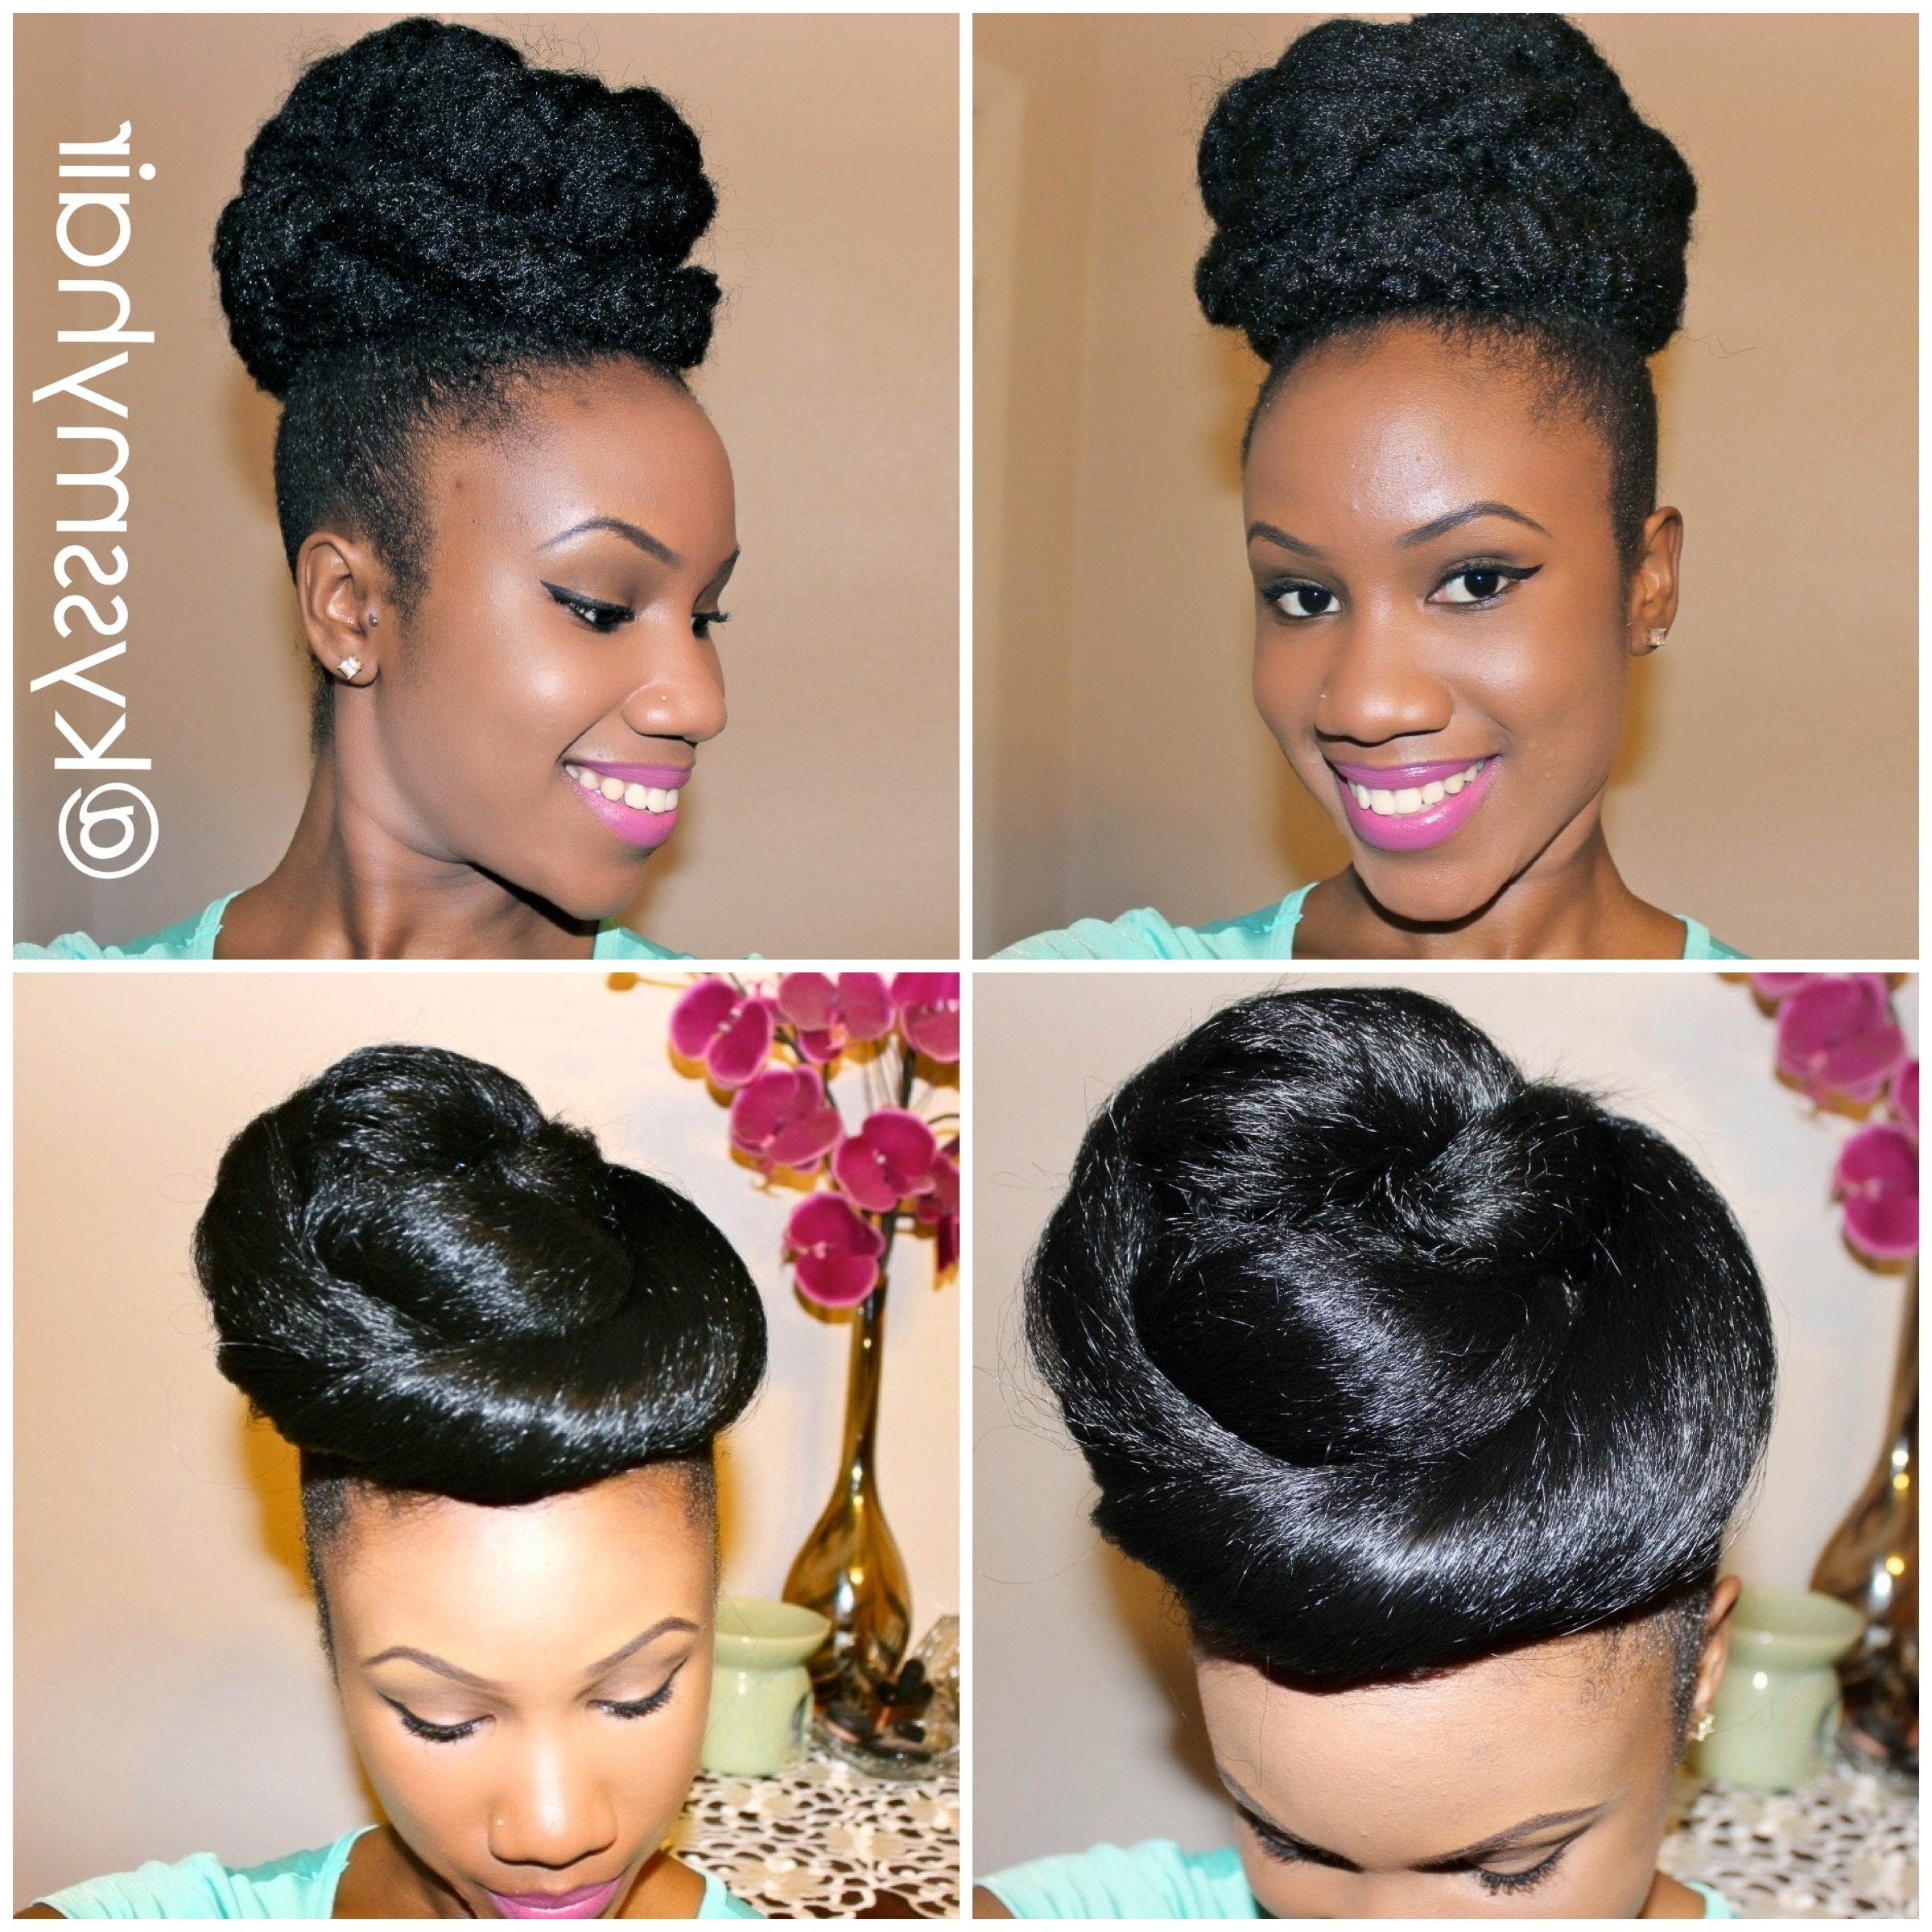 New Special Occasion Natural Hair Bun Tutorial Up On My Youtube Best Intended For Natural Updo Bun Hairstyles (View 11 of 15)